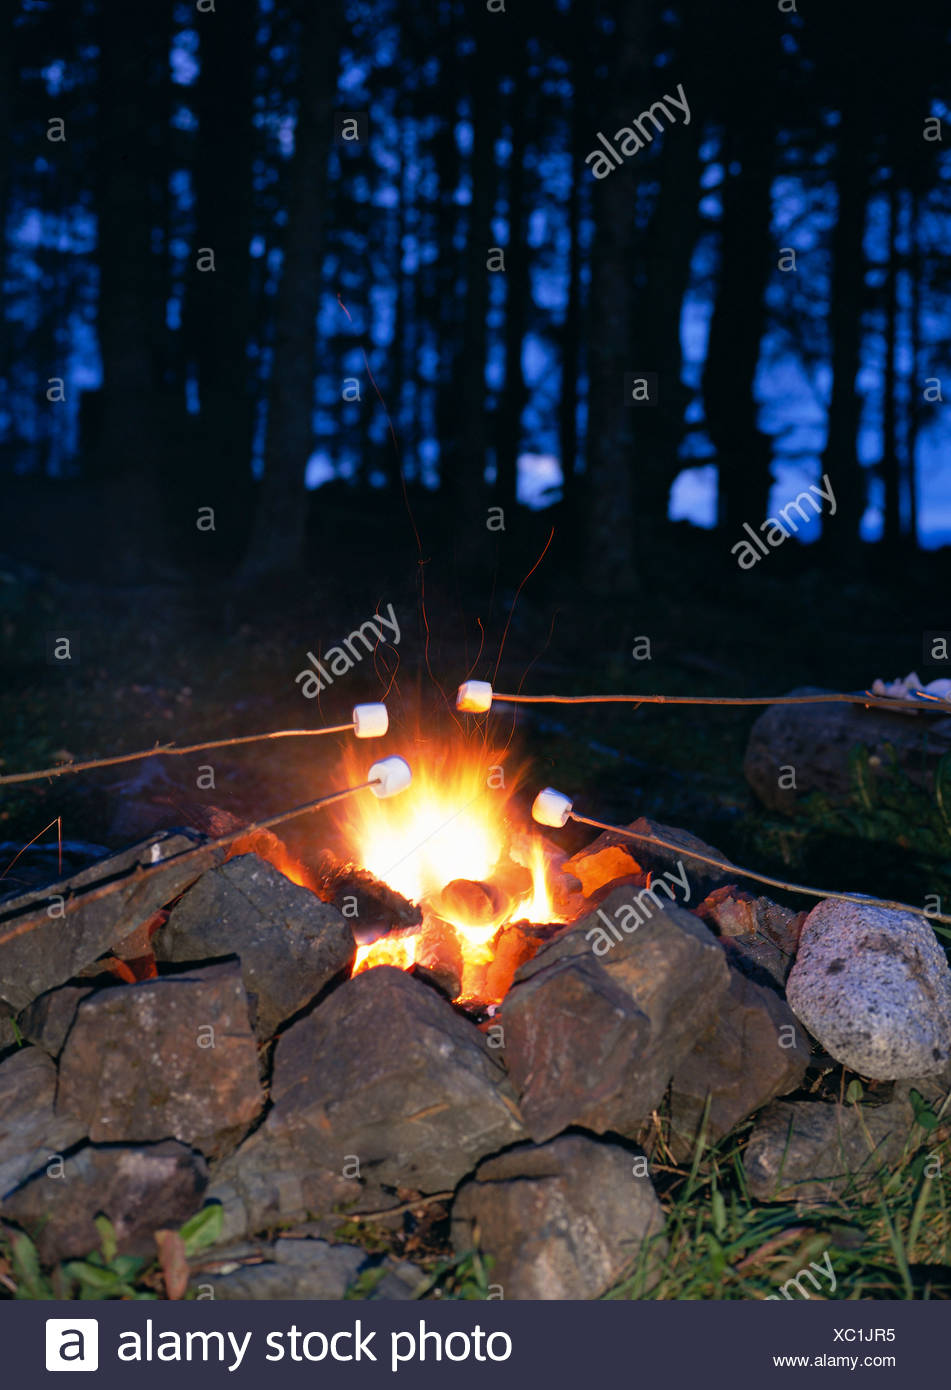 Roasting Marshmallows Over Campfire Close Up AK